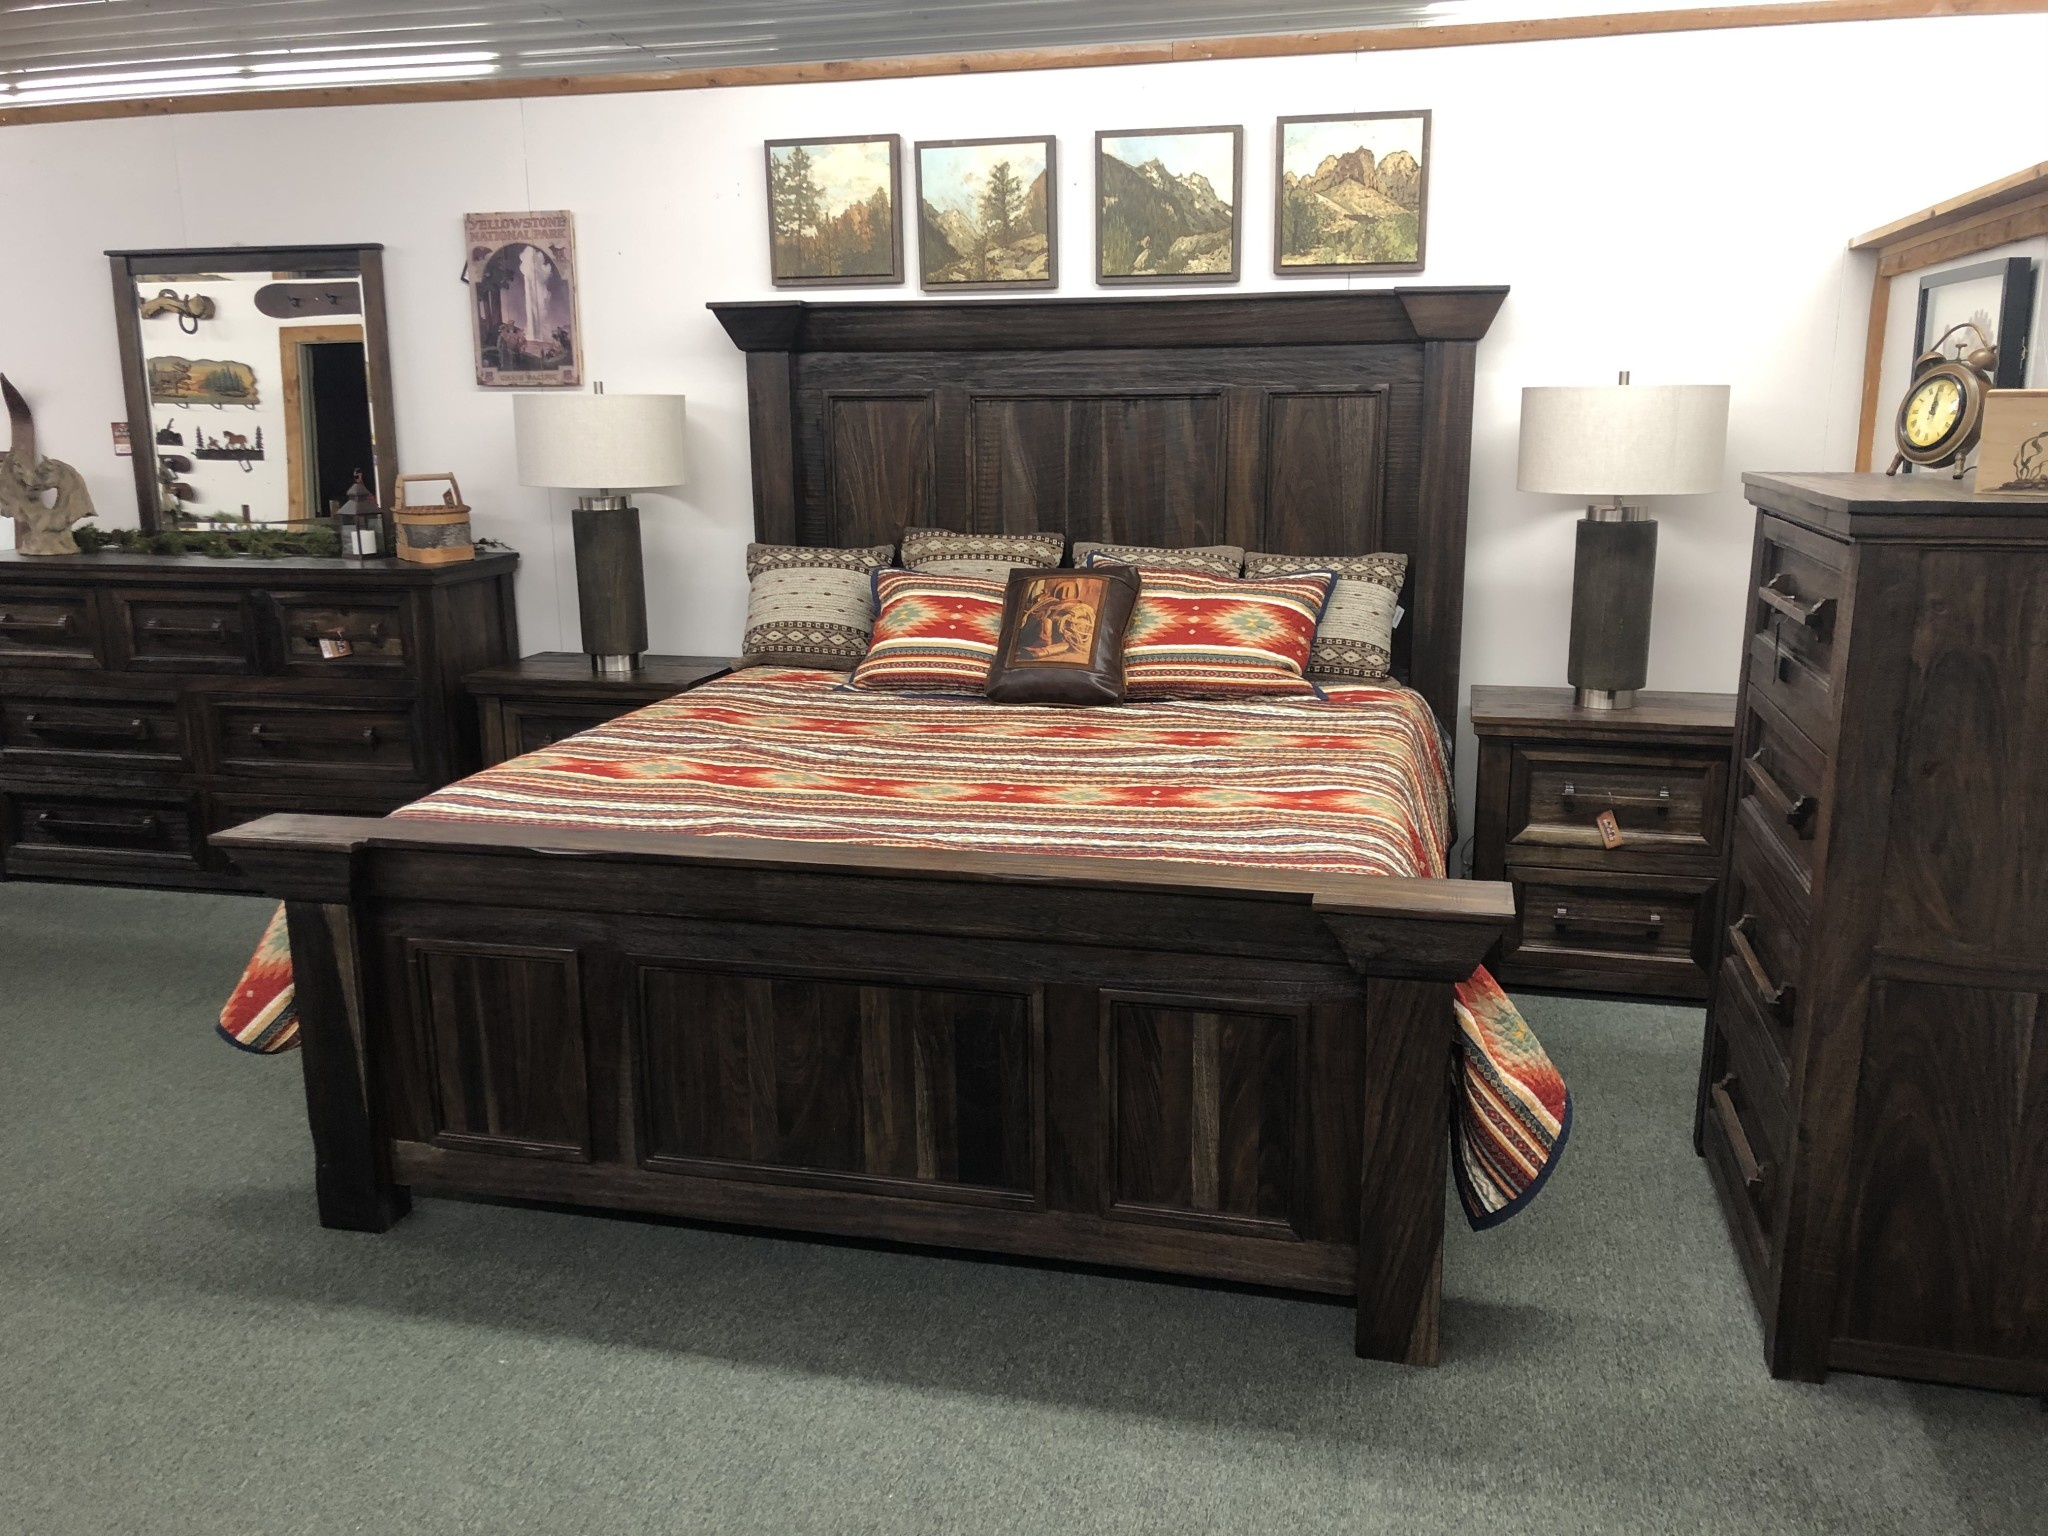 IFD 9112 - Palencia KING Bed